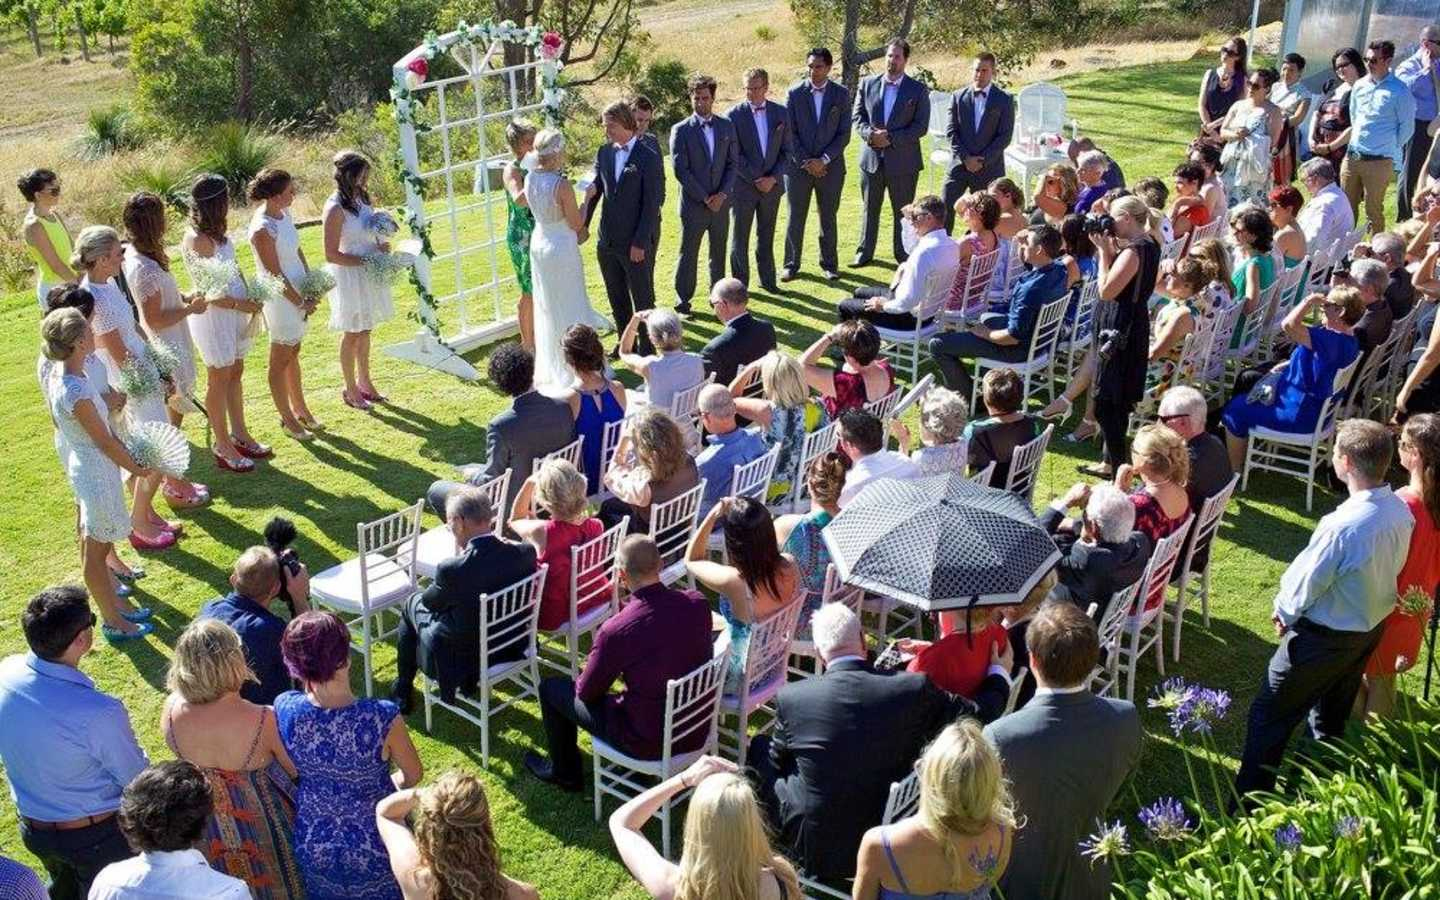 Large outdoor ceremony